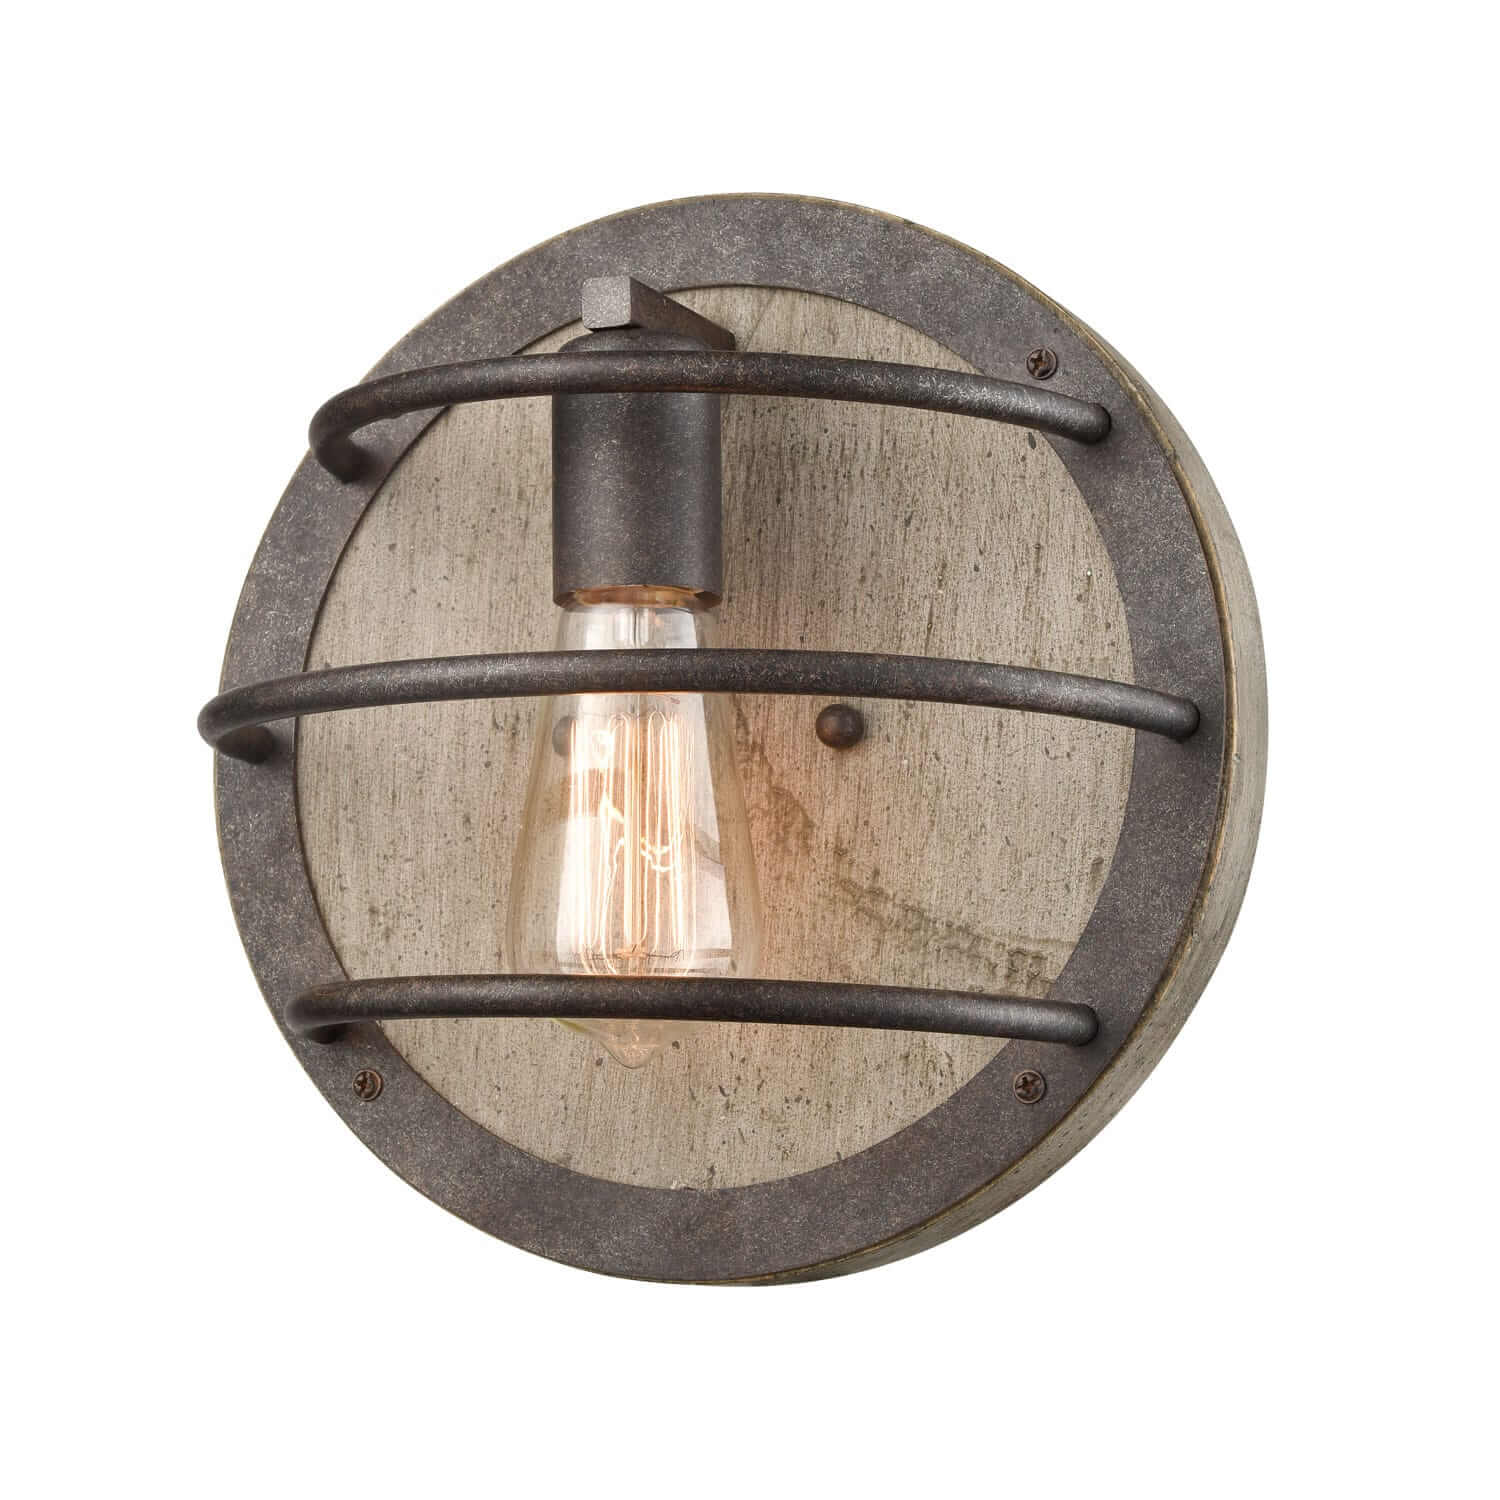 Farmhouse Wall Sconce with Wooden Round Shade Rust Finish